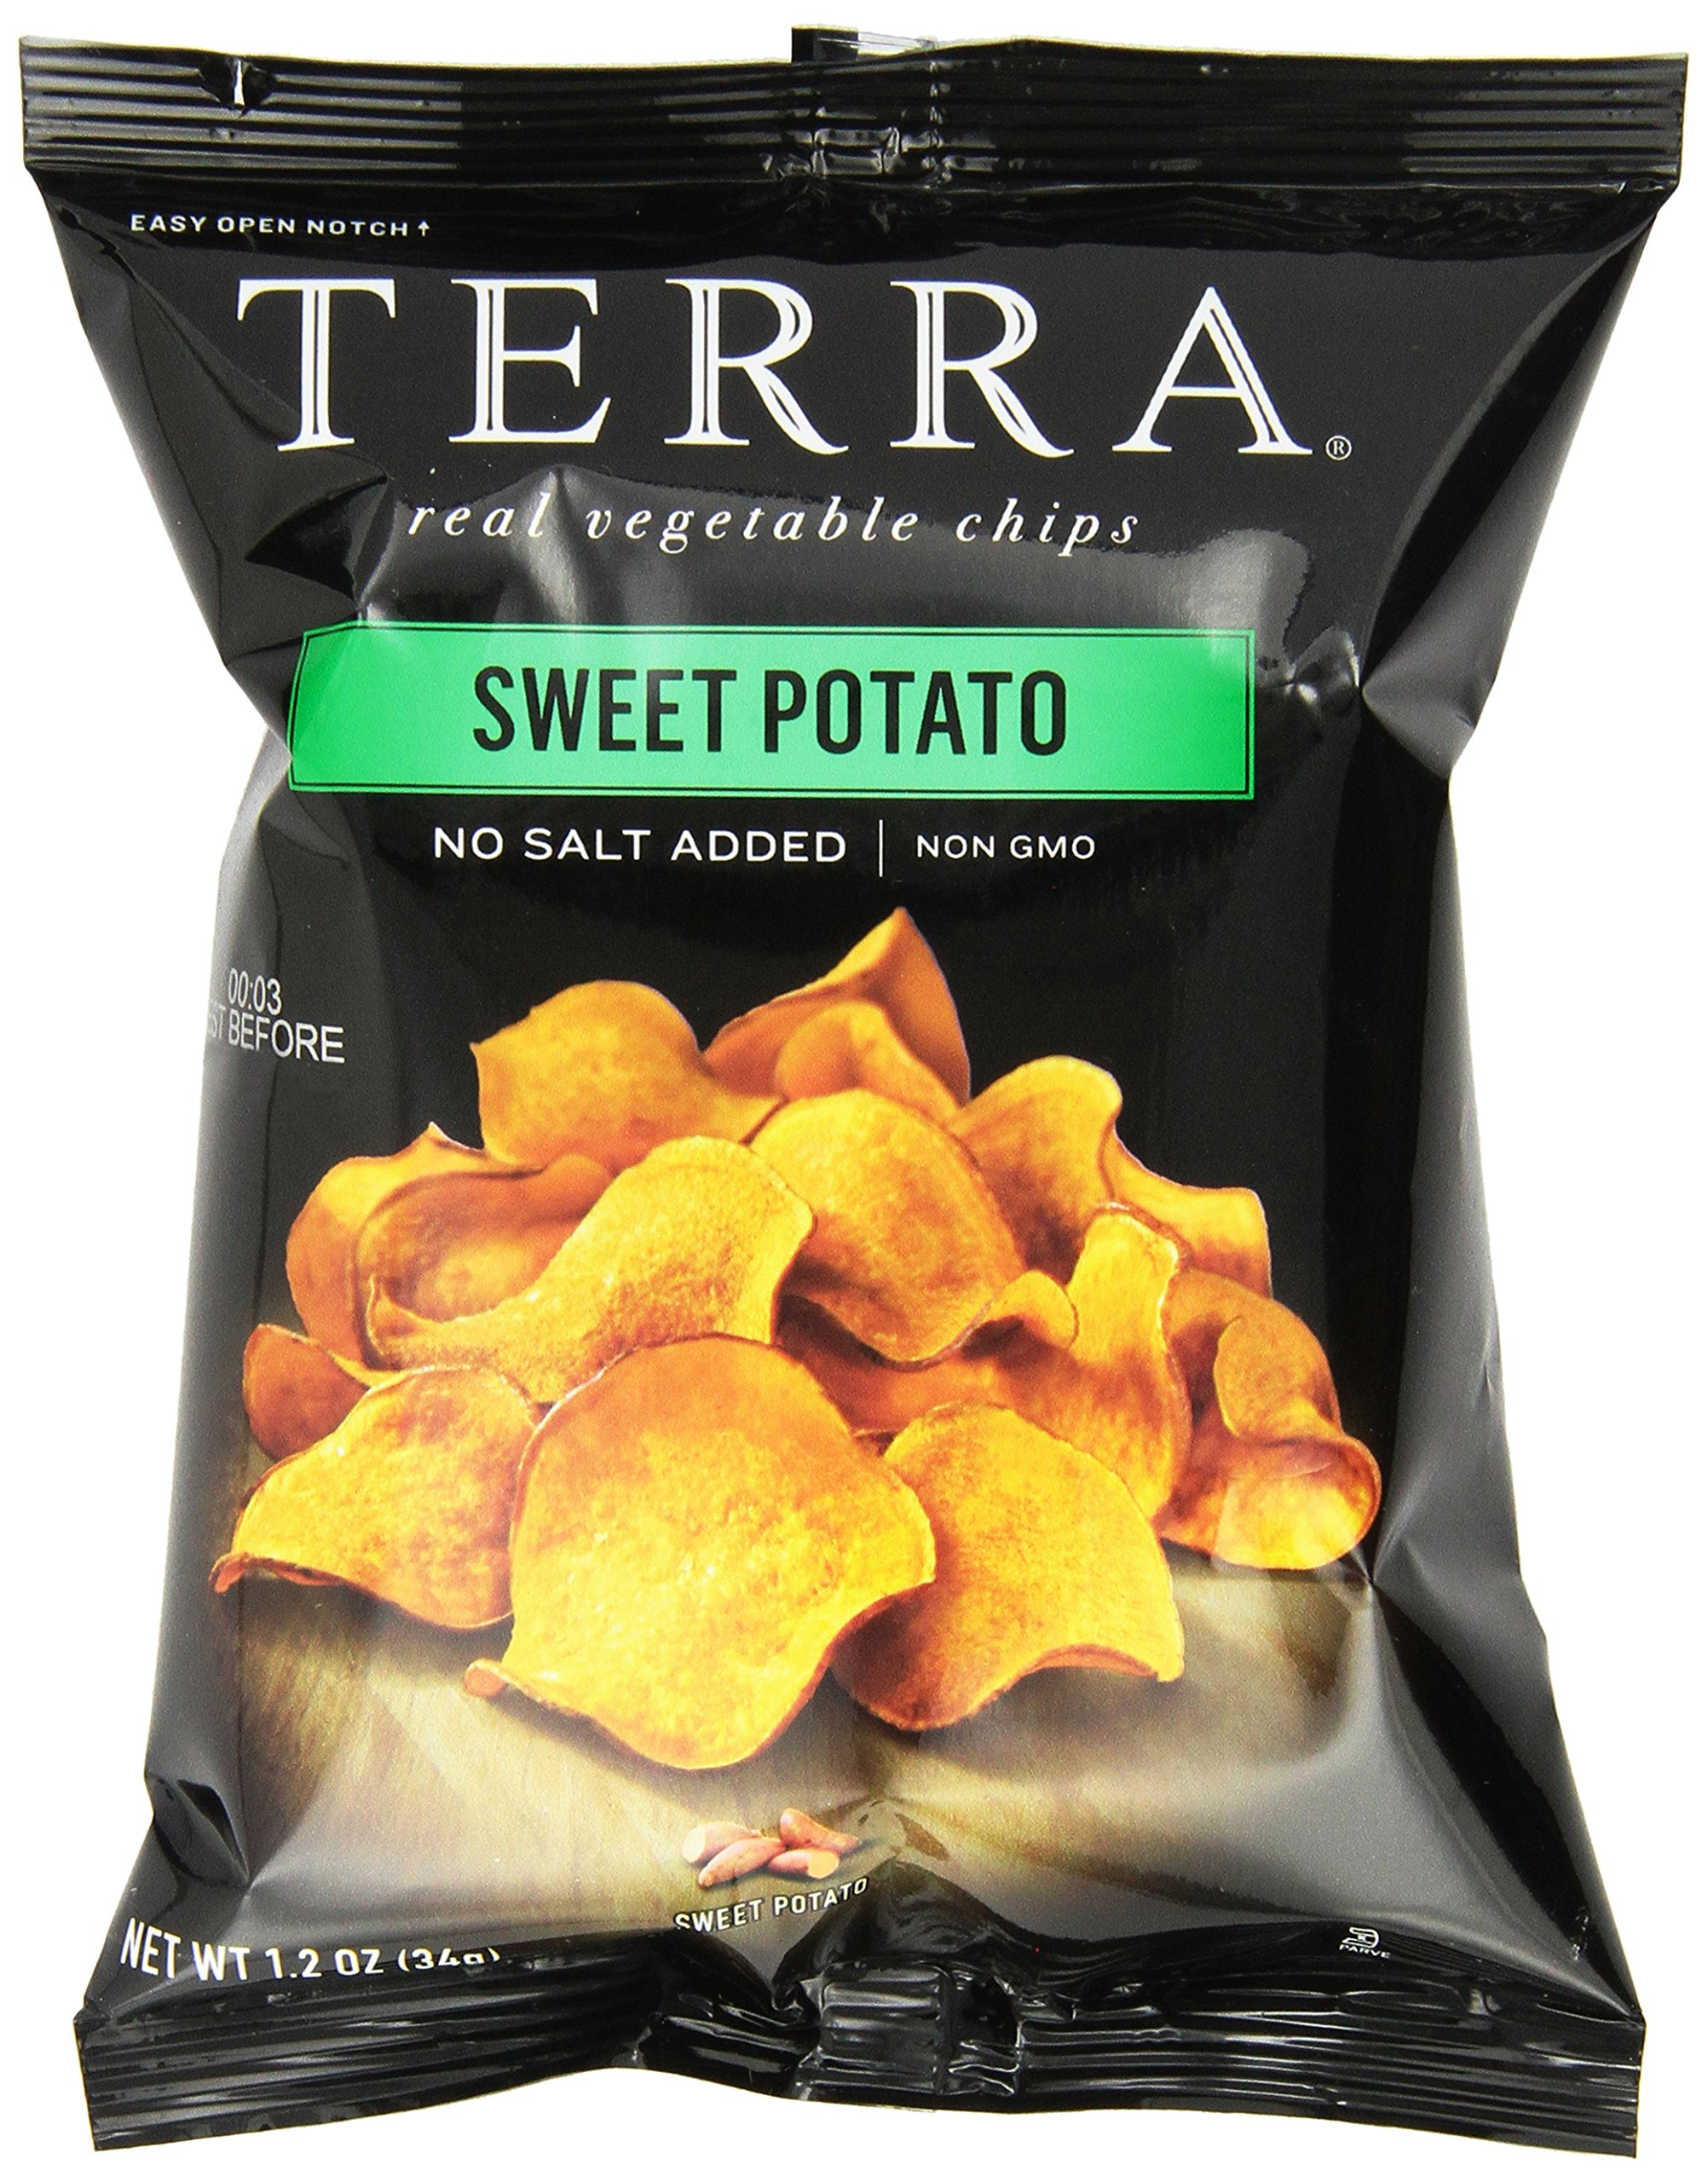 TERRA Sweet Potato Chips, No Salt Added, 1.2 ounce (Pack of 24)